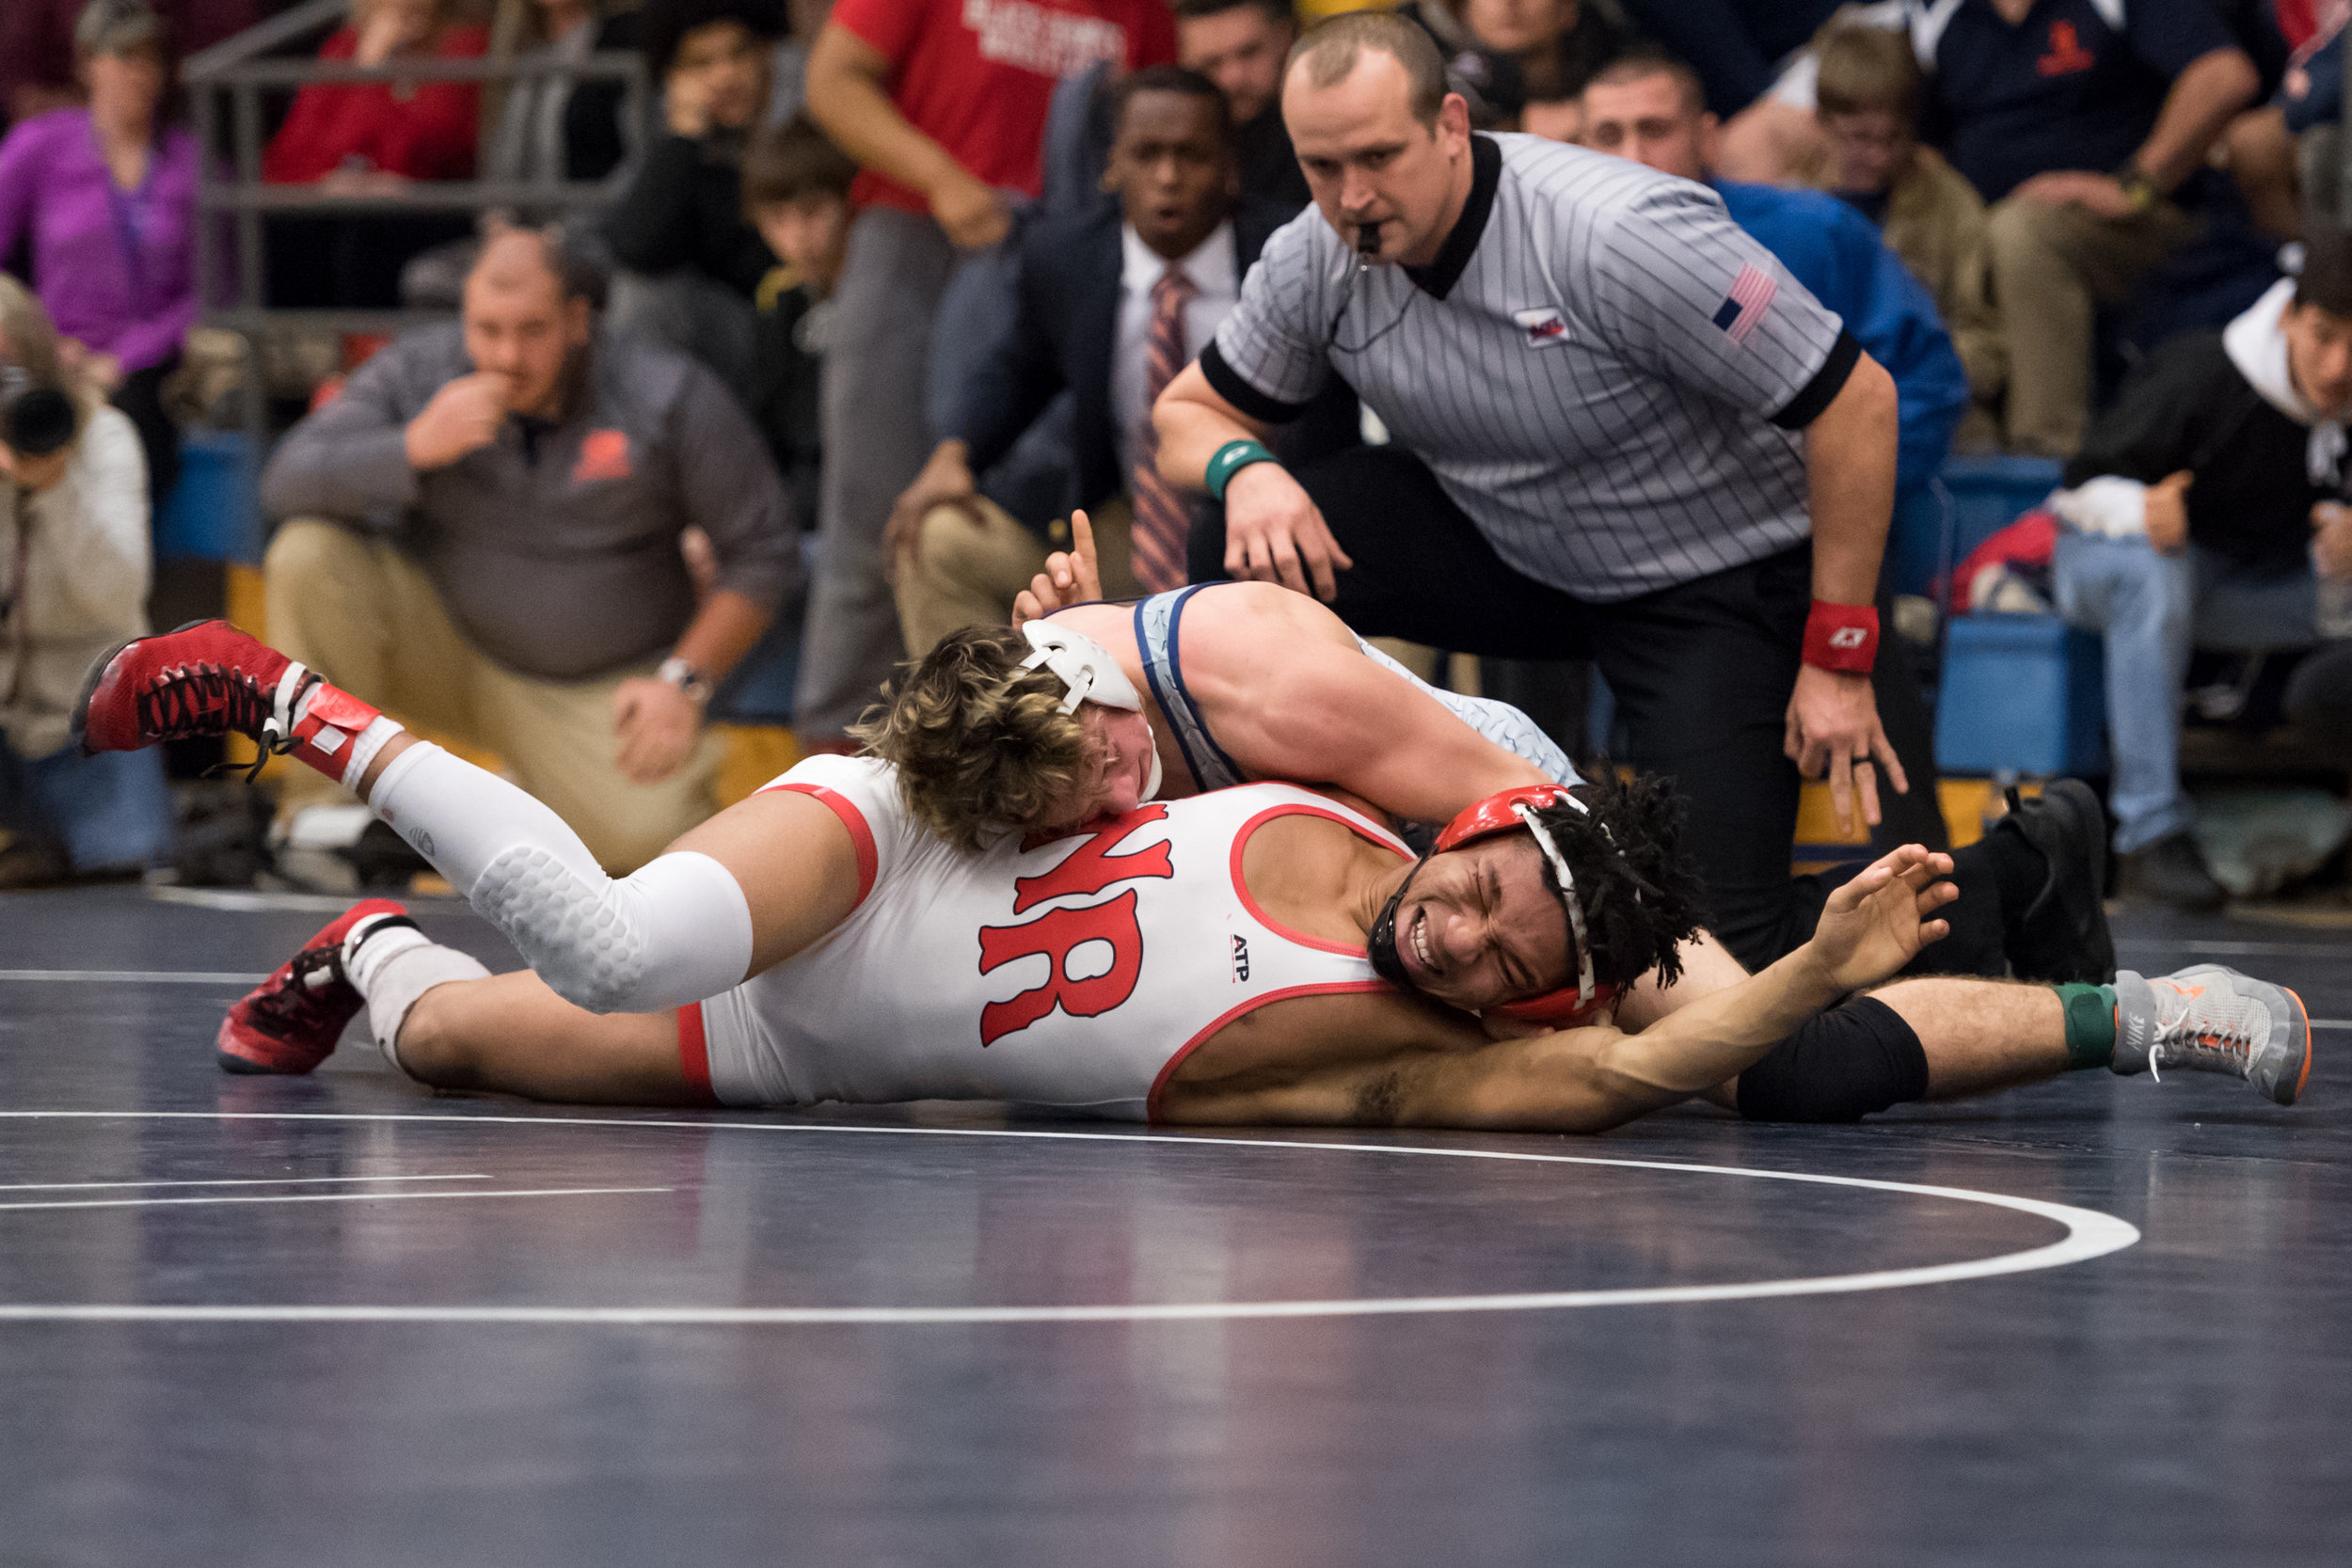 Nansemond River's Elijah Williams works to escape North Stafford's Julio Alegeria during the 145 pound match at the VHSL Region 5 State Championship held on Saturday, February 17, 2018 at Oscar Smith High School. Williams placed 2nd in the state championship.